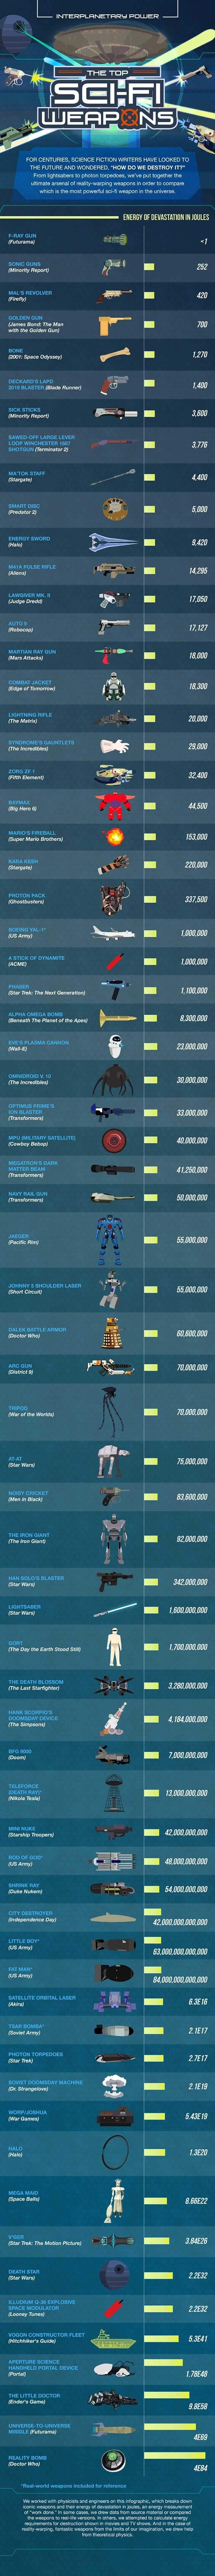 What are the top weapons of scientific fiction #infographic